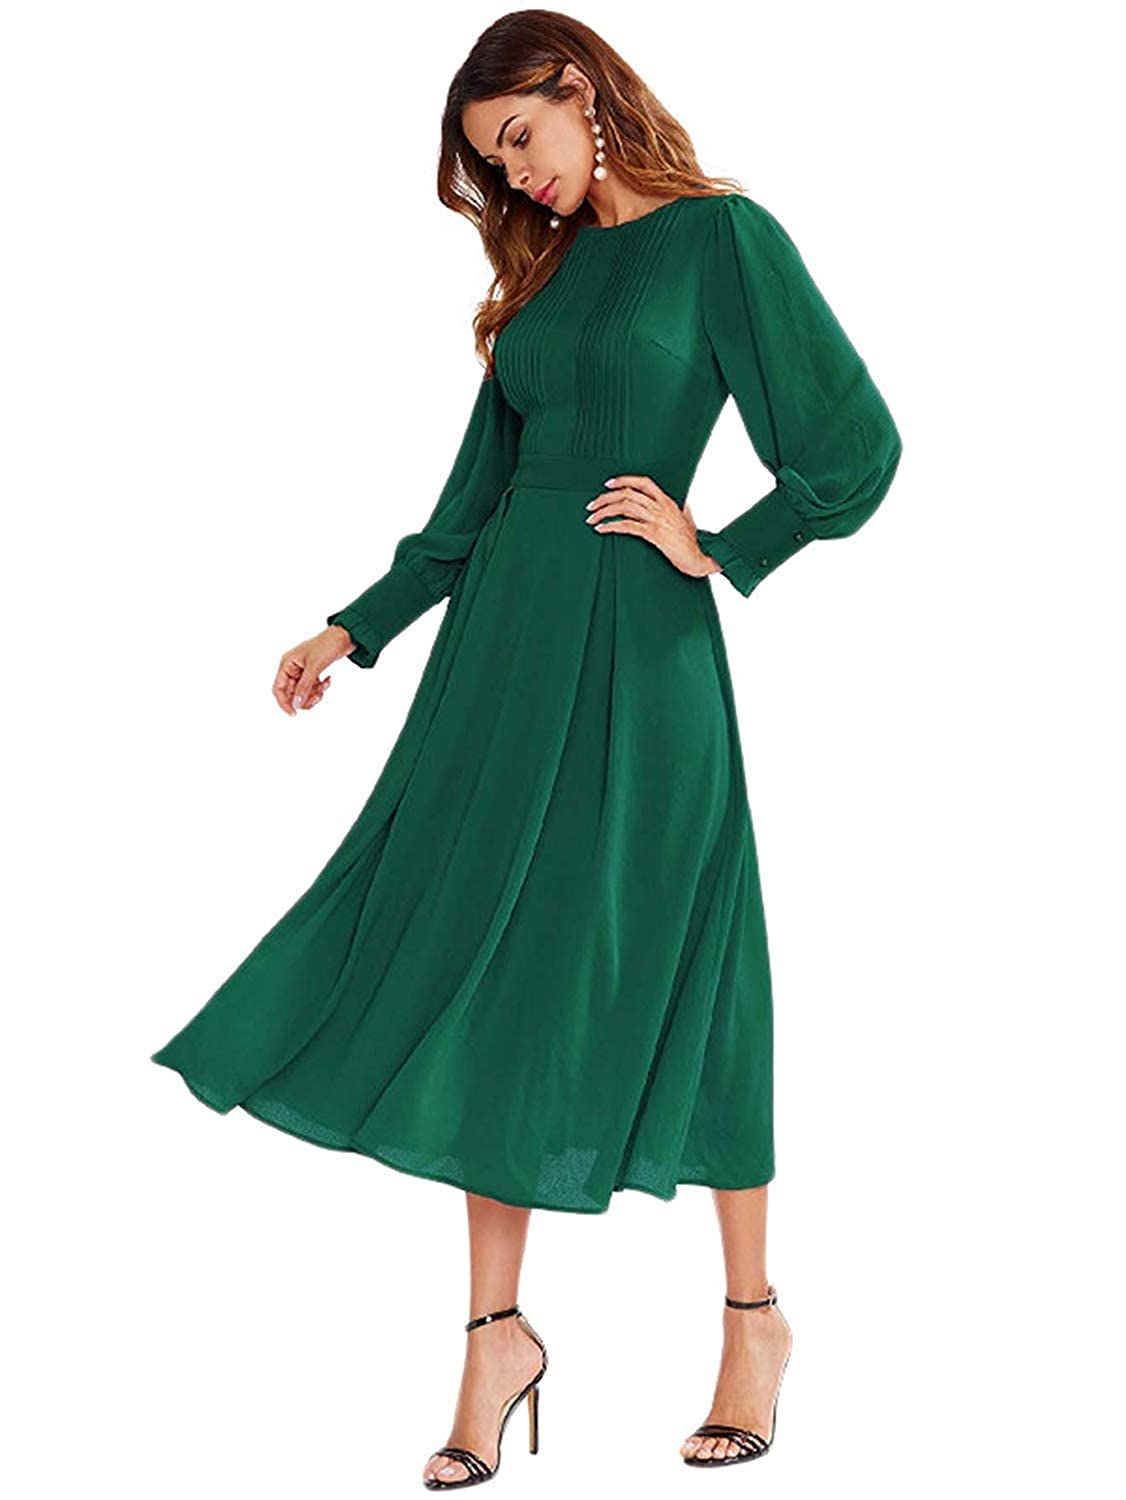 1940s Dresses | 40s Dress, Swing Dress Milumia Womens Elegant Frilled Long Sleeve Pleated Fit & Flare Dress $36.99 AT vintagedancer.com